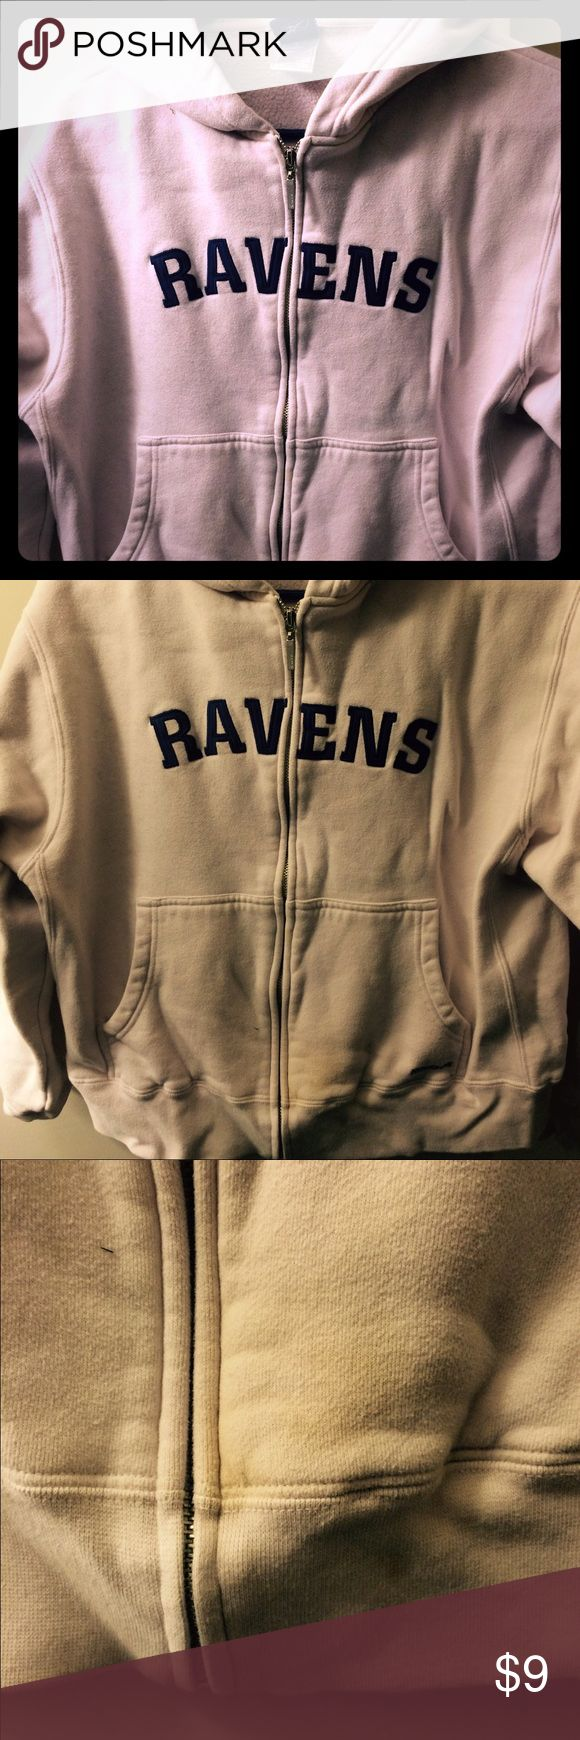 NFL Reebok Ravens Zip Up Hoodie This women's zip up hoodie is offices NFL Reebok. It is a pale pink/pale lavender/blush color. There is a faint stain at the bottom near the zipper ( see picture). Size large, but fits more like a women's medium I think. Reebok Tops Sweatshirts & Hoodies